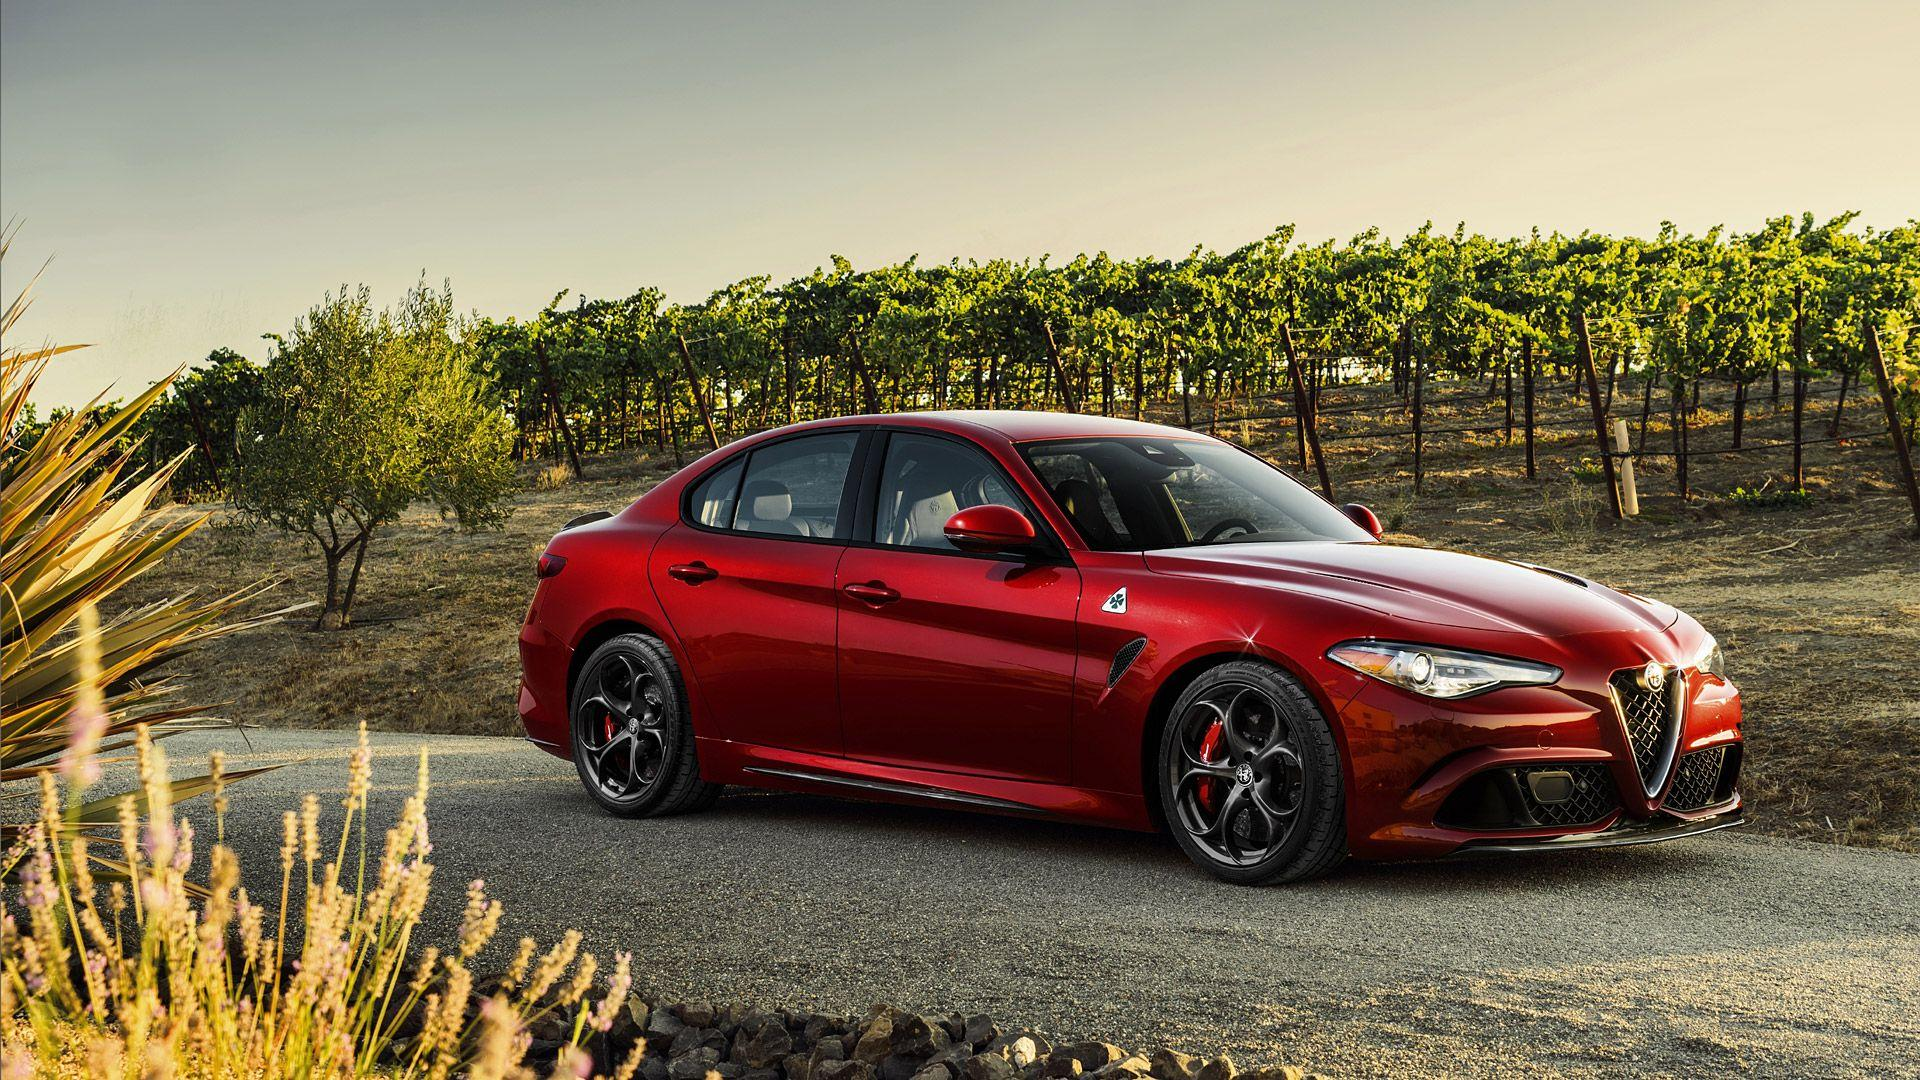 Alfa Romeo Giulia Wallpapers Wallpaper Cave